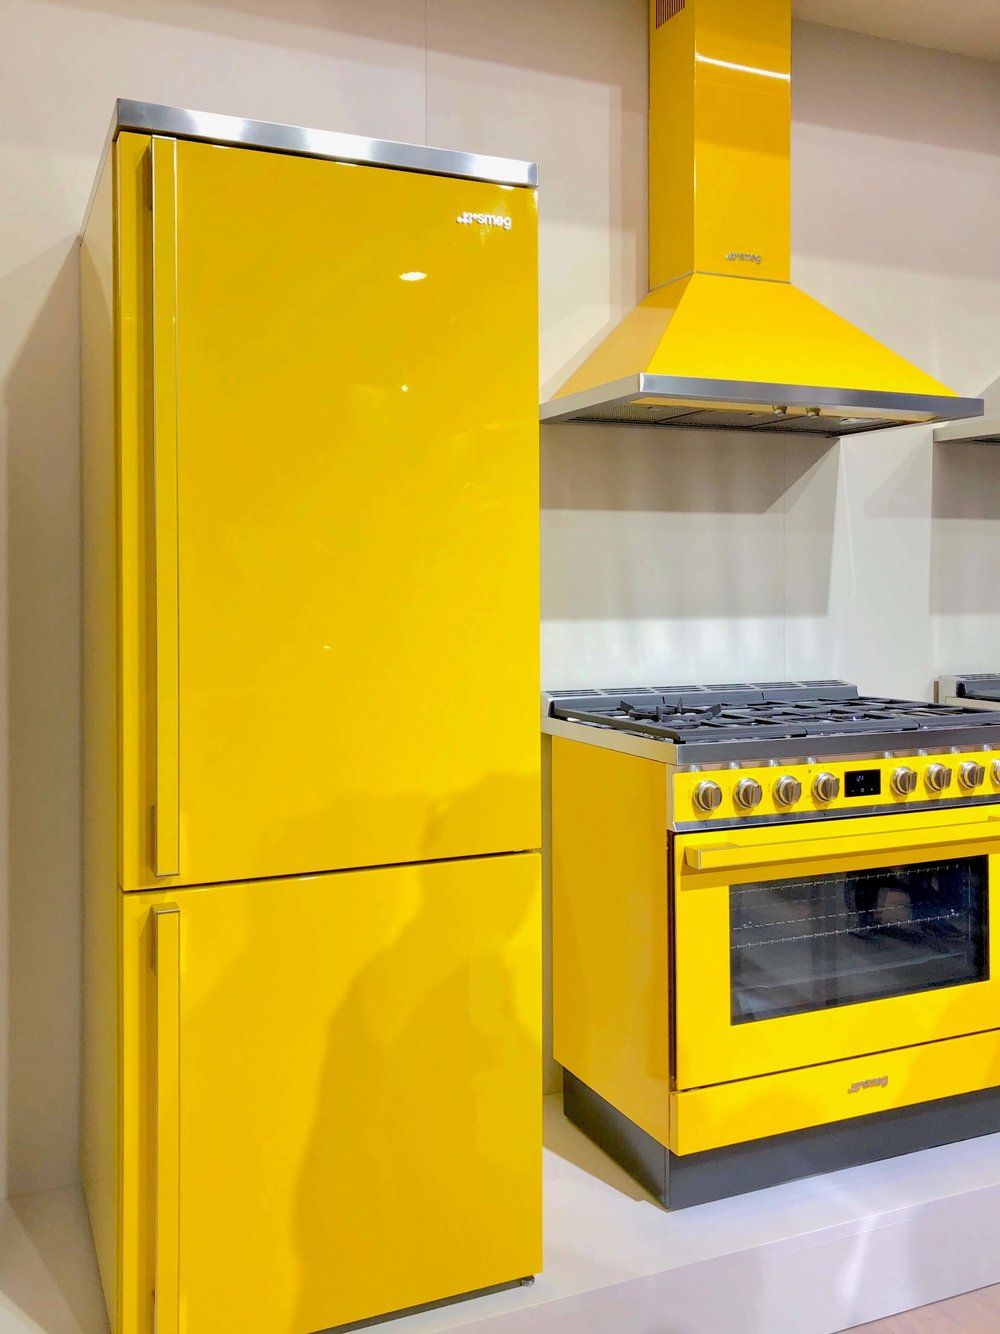 Yellow Refrigerator Google Search In 2020 Kitchen Appliances Design White Appliances Appliances Design